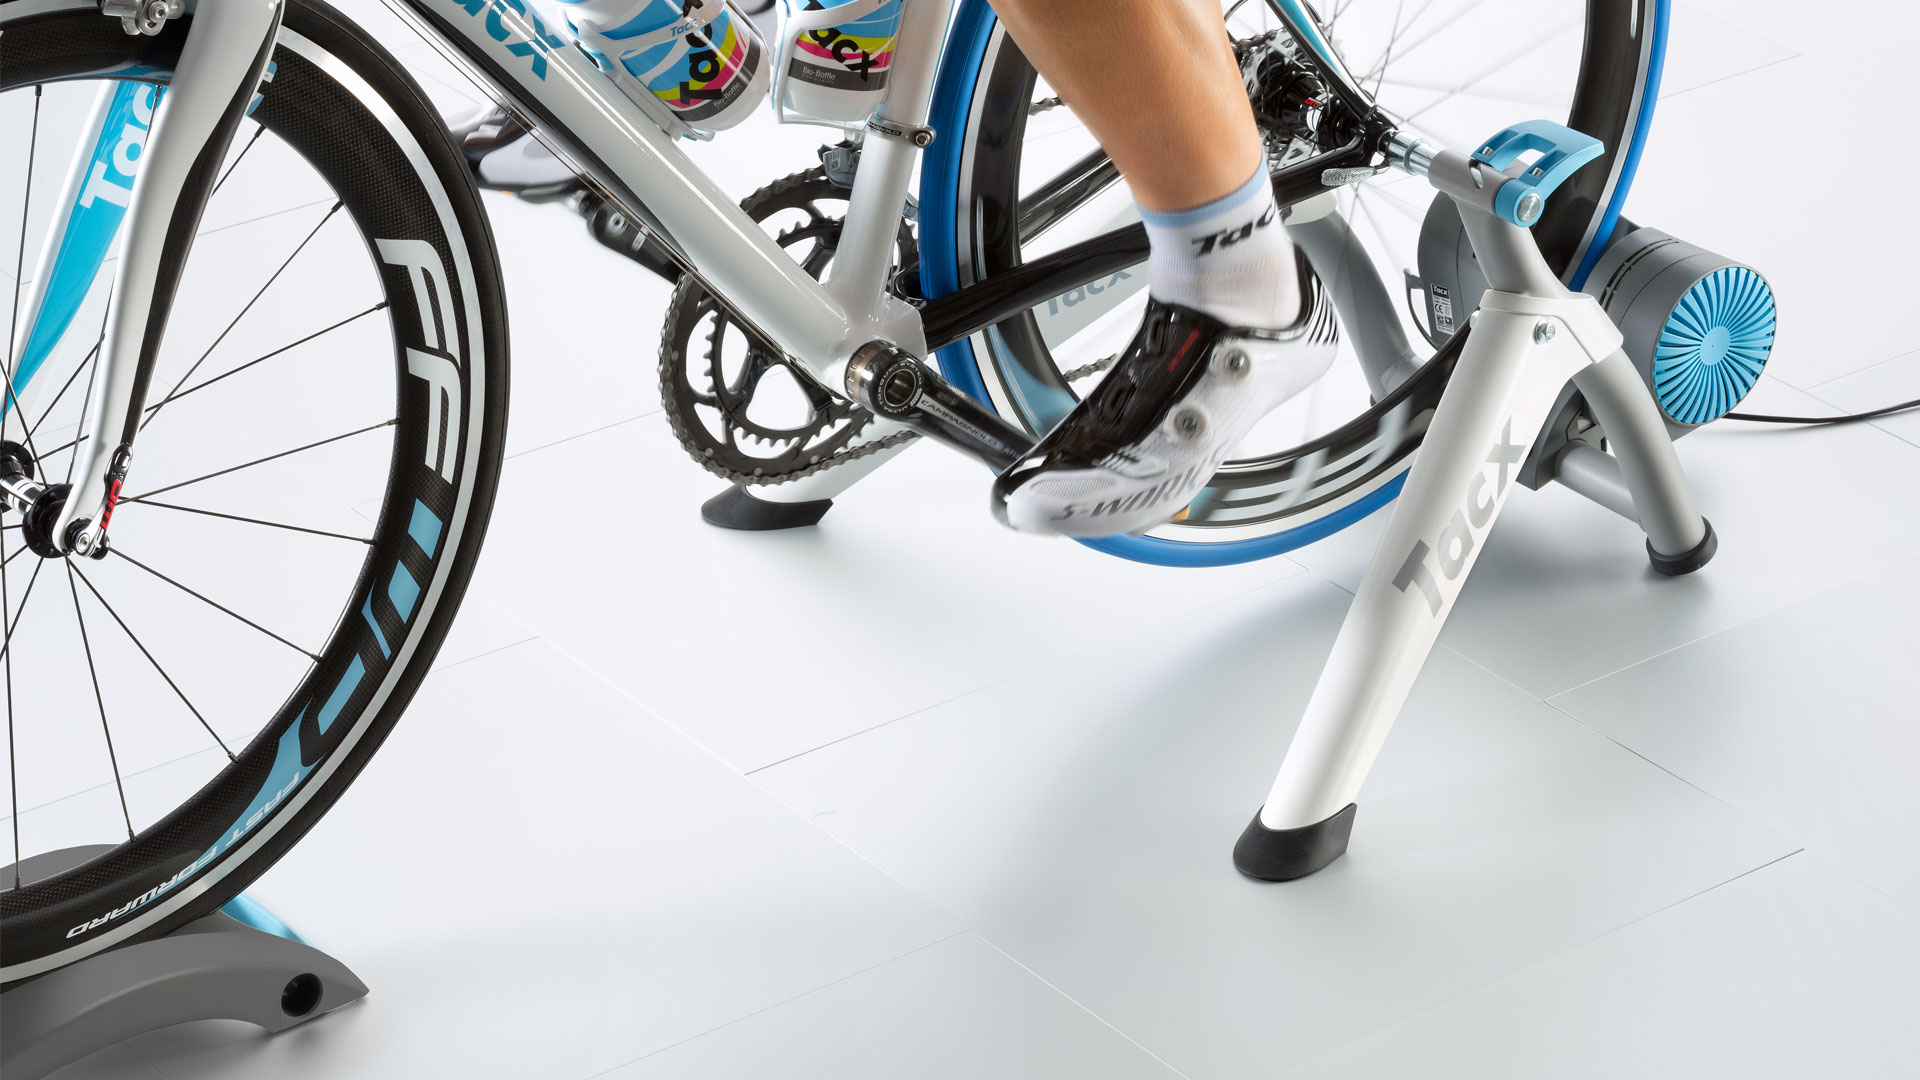 Tacx - Vortex Smart Trainer - Bild 7